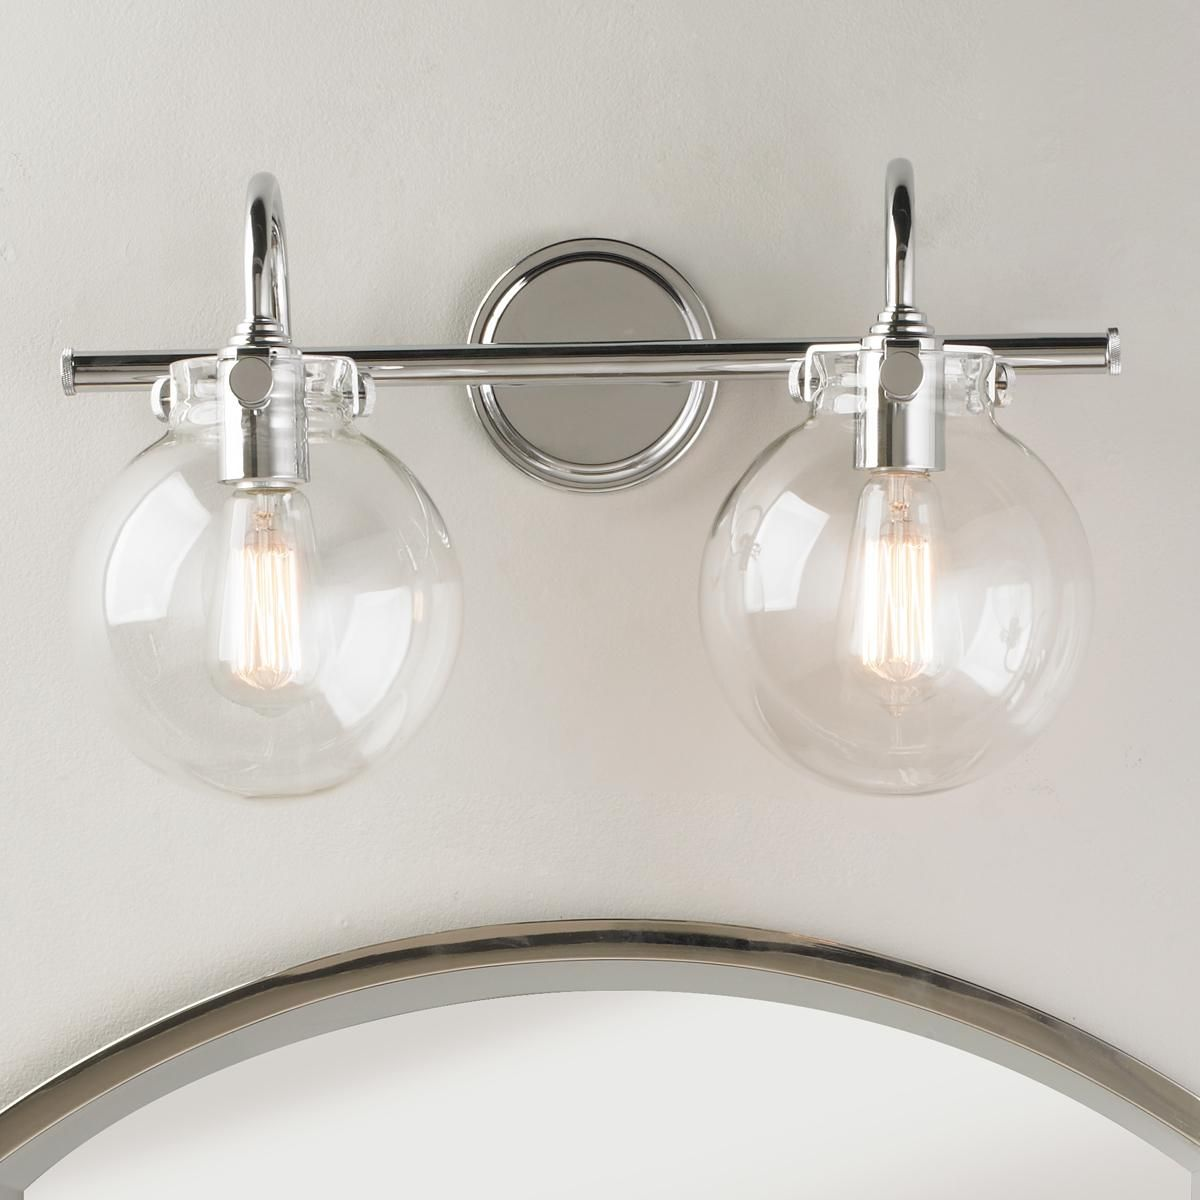 Bathroom Light Fixtures Silver retro glass globe bath light - 2 light | bath light, globe and